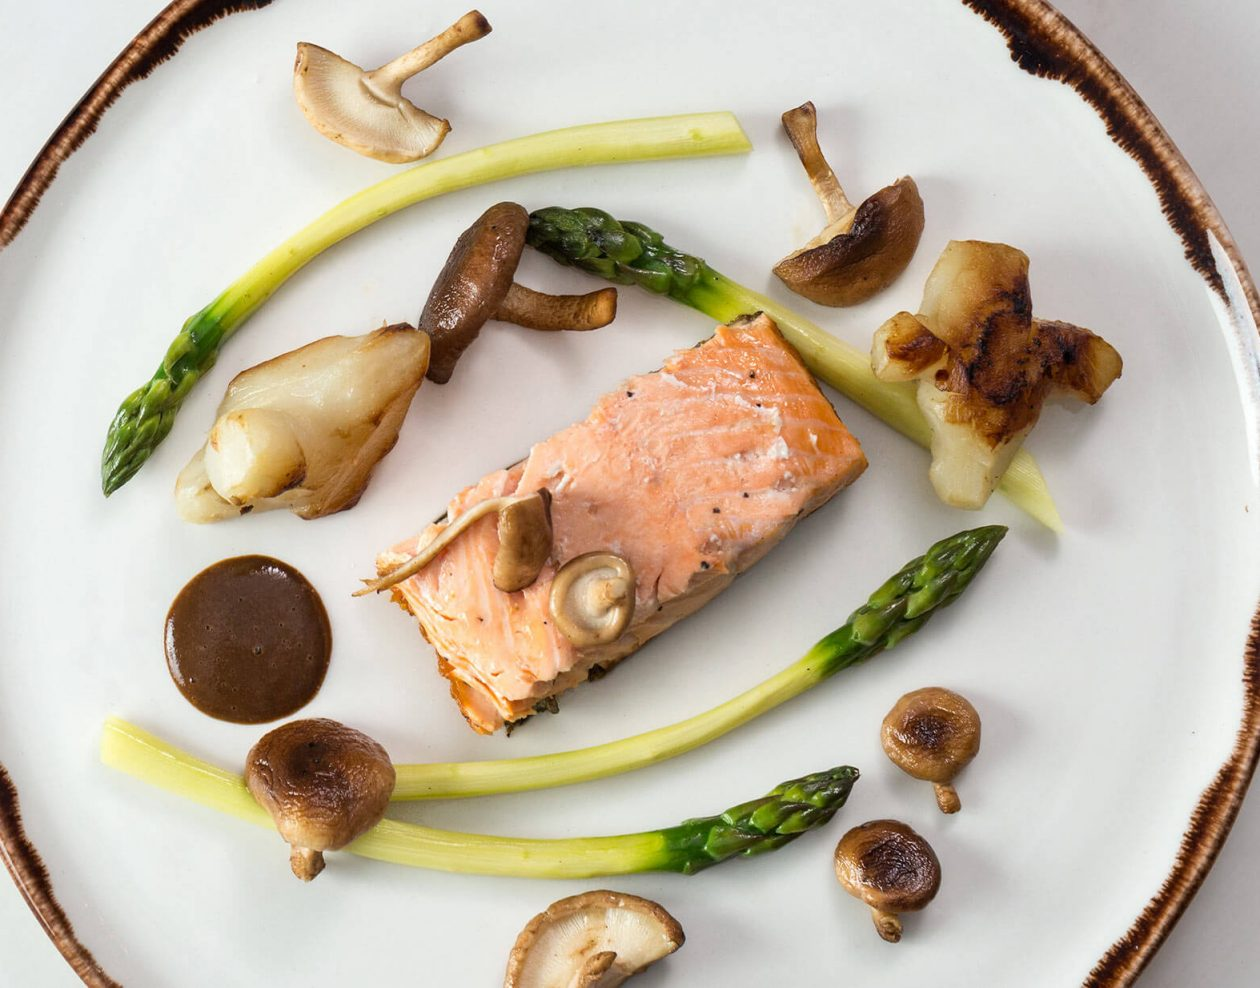 Dinner Entree of Salmon and mushrooms